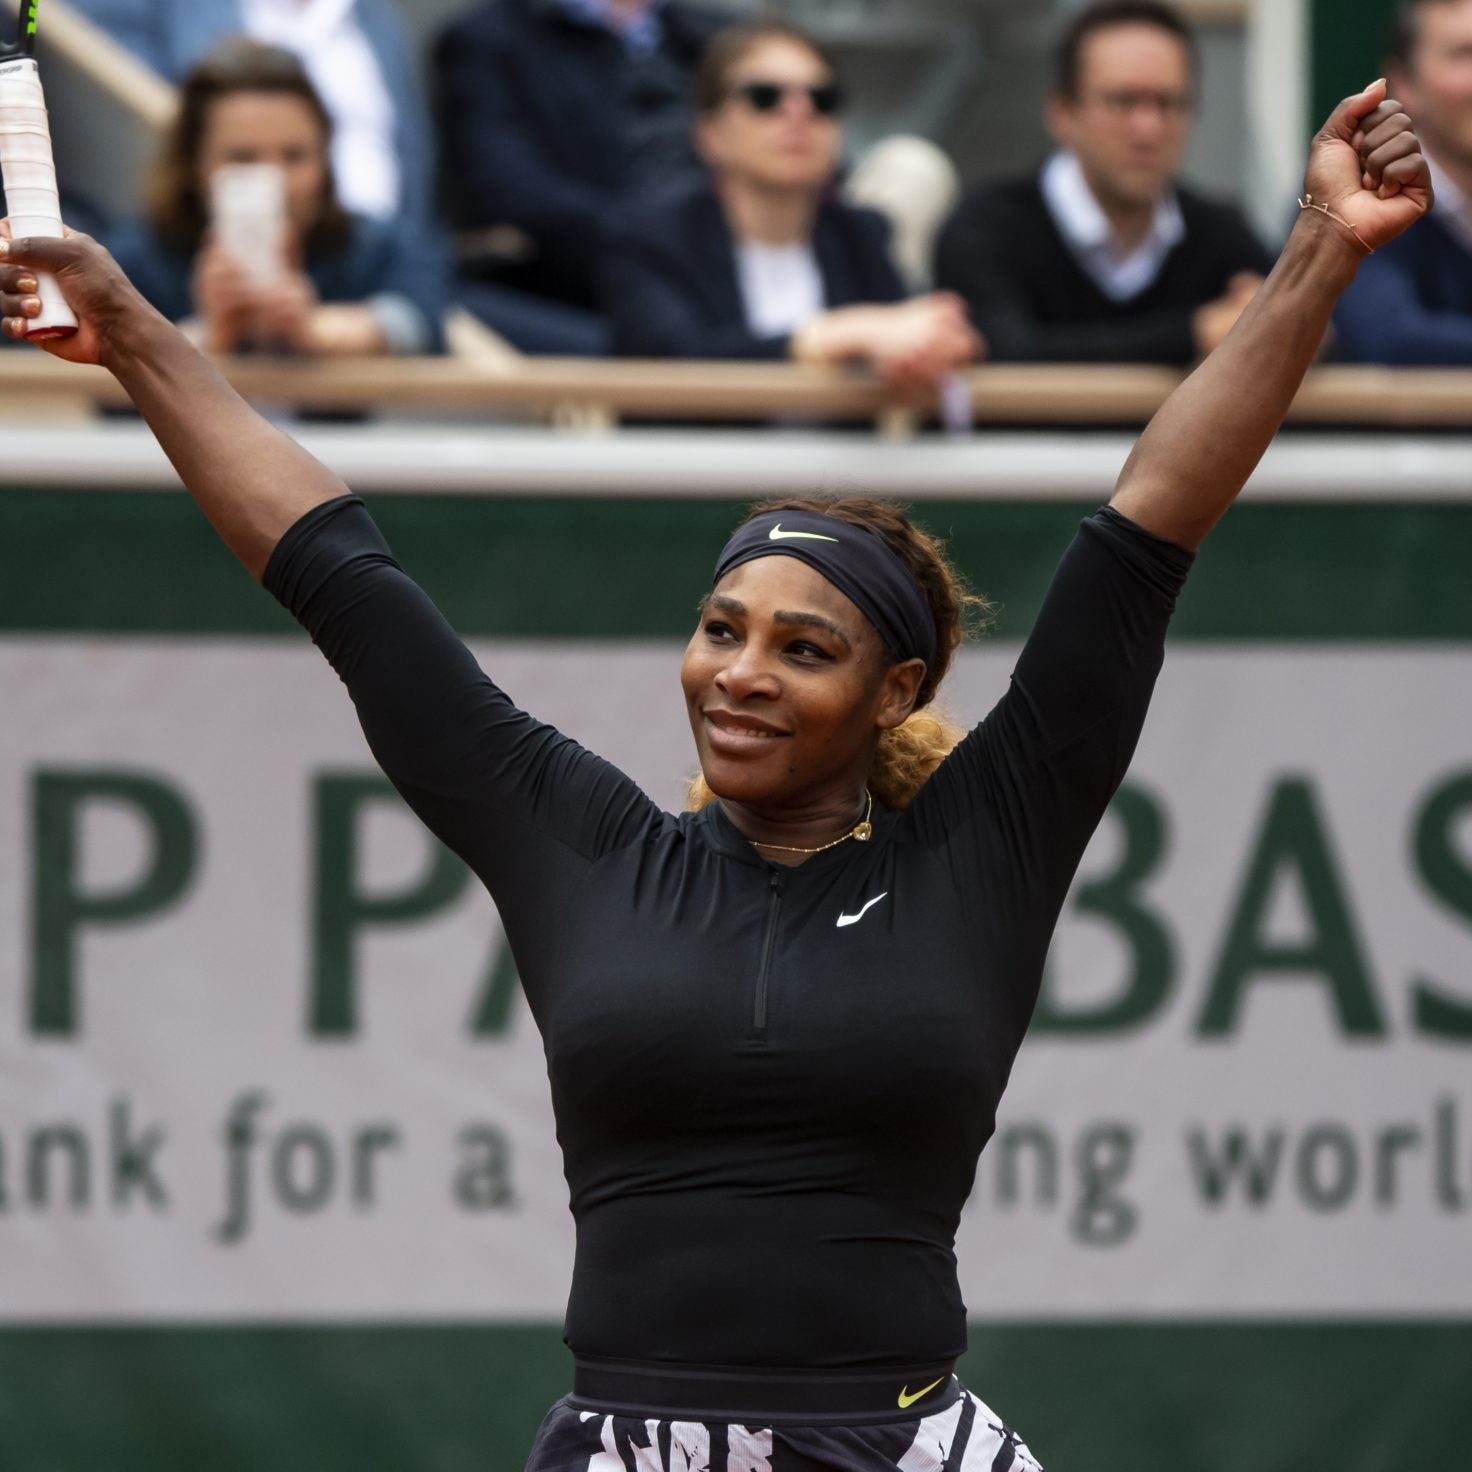 Serena Williams Responds To Critics: 'The Day I Stop Fighting for Equality Will Be the Day I'm in My Grave'